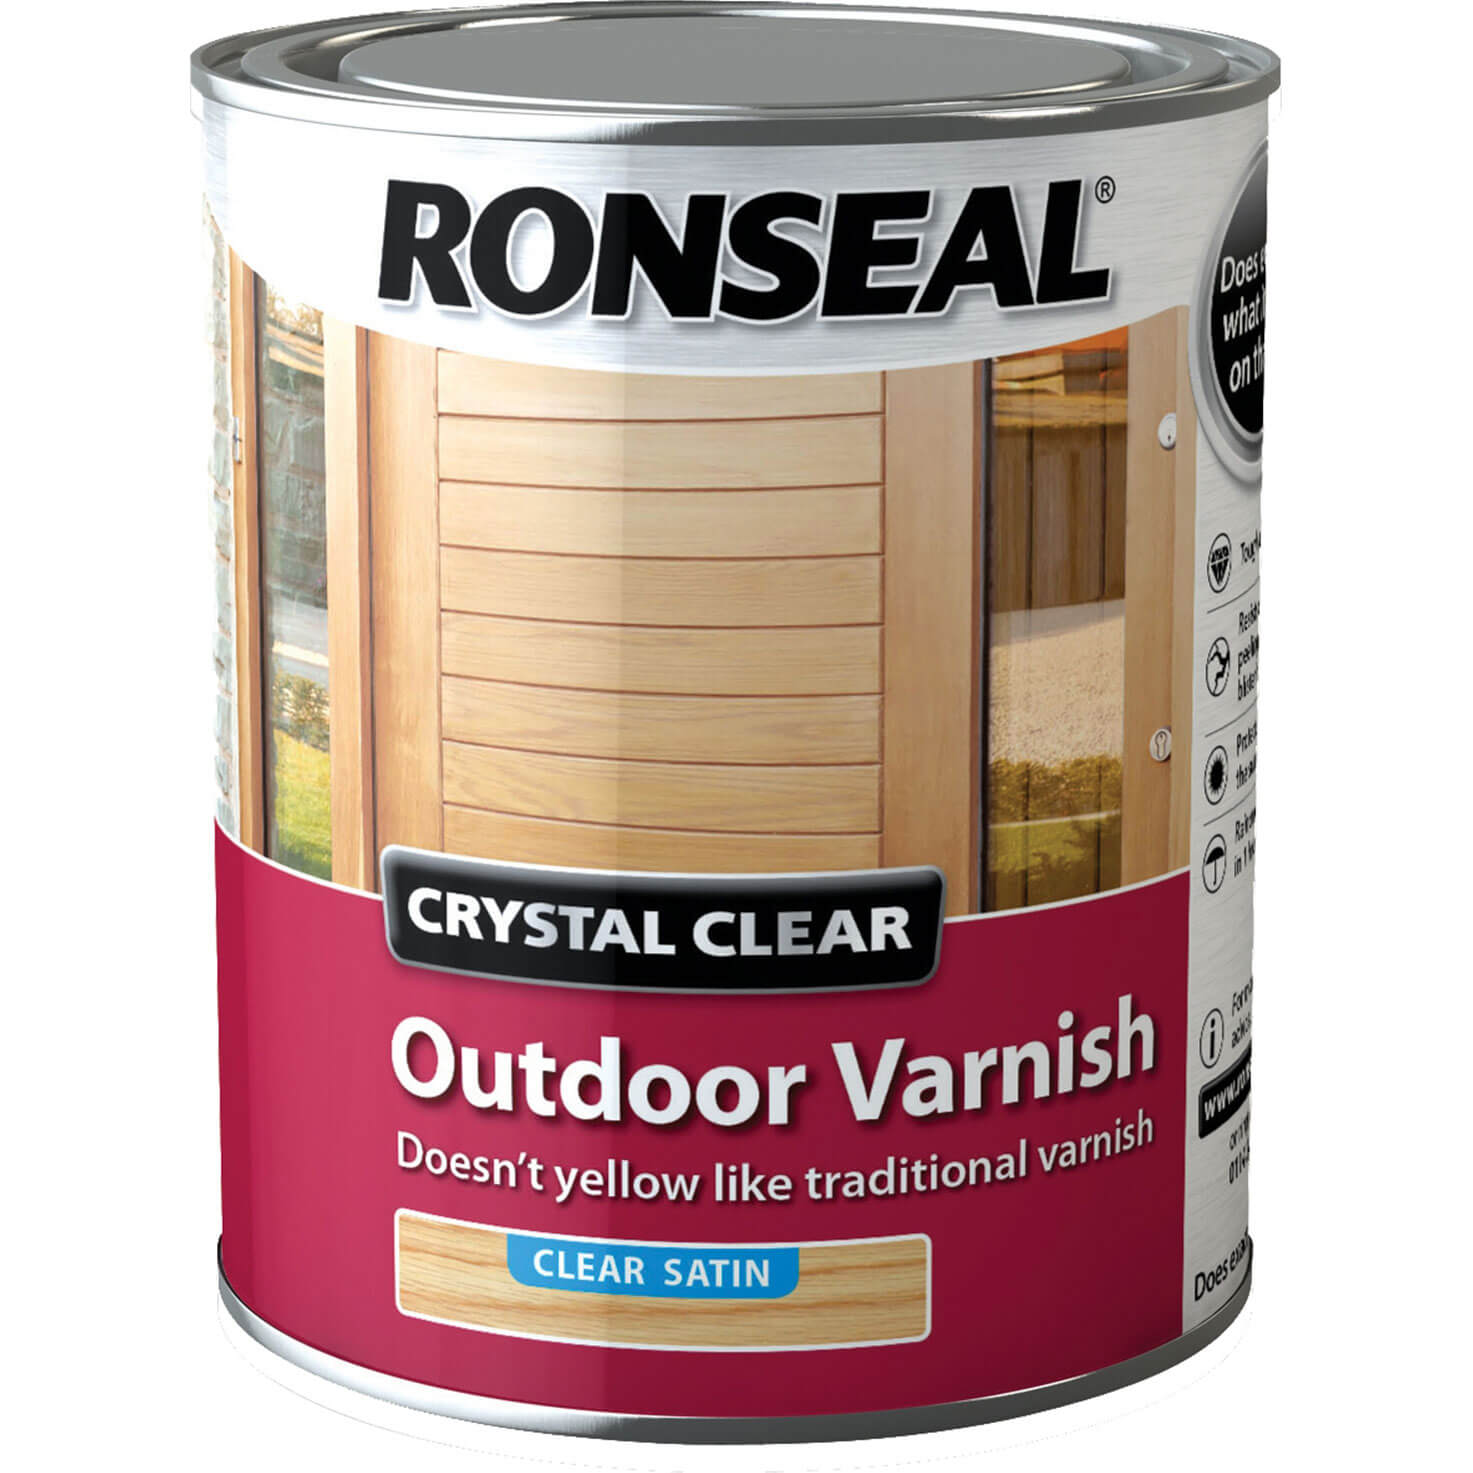 Image of Ronseal Crystal Clear Outdoor Varnish Satin 750ml